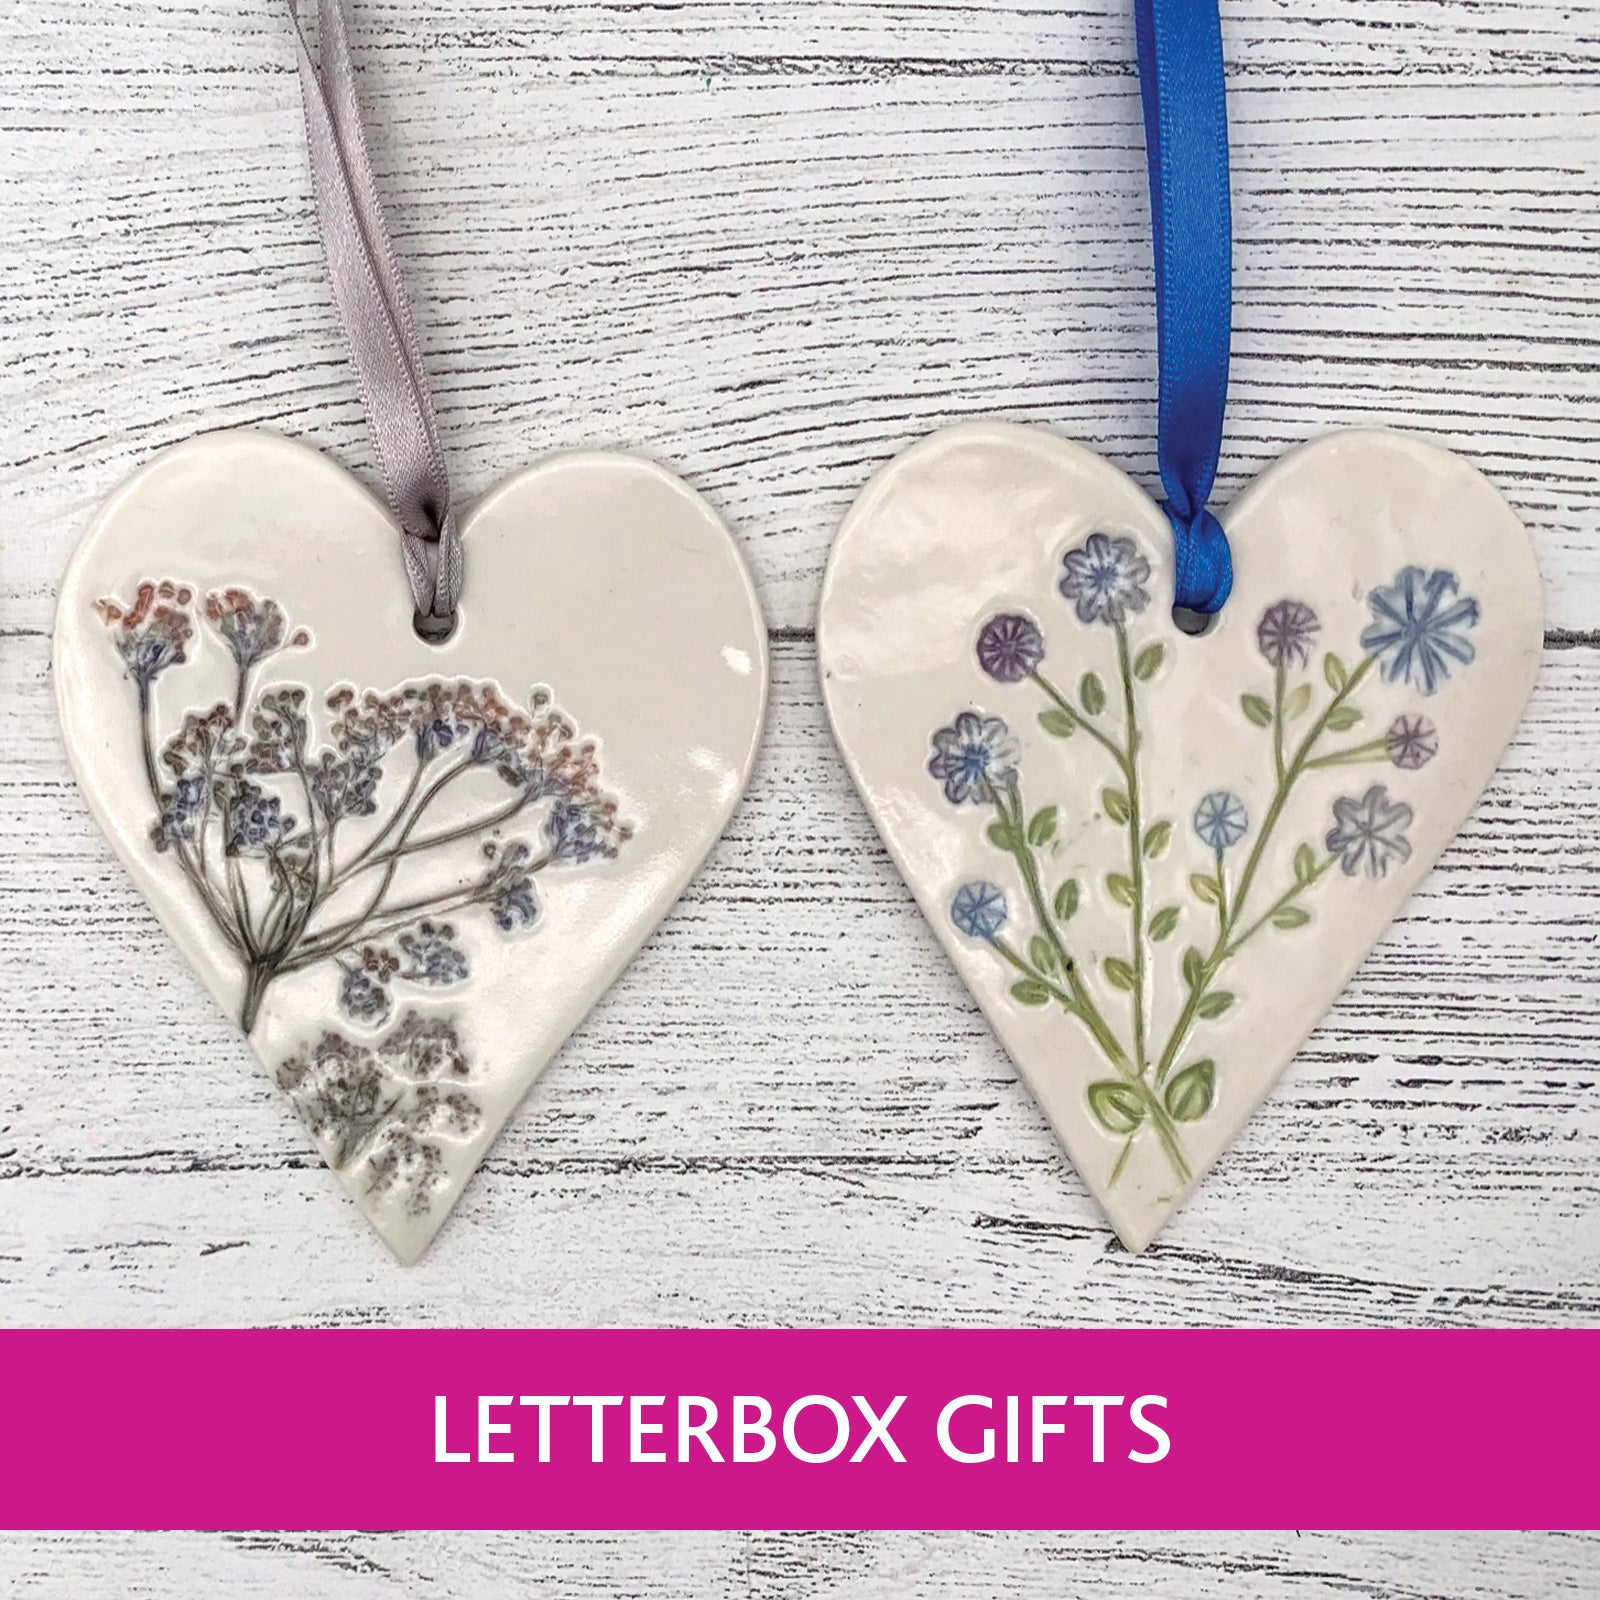 Letterbox Gifts by Ferrers Gallery